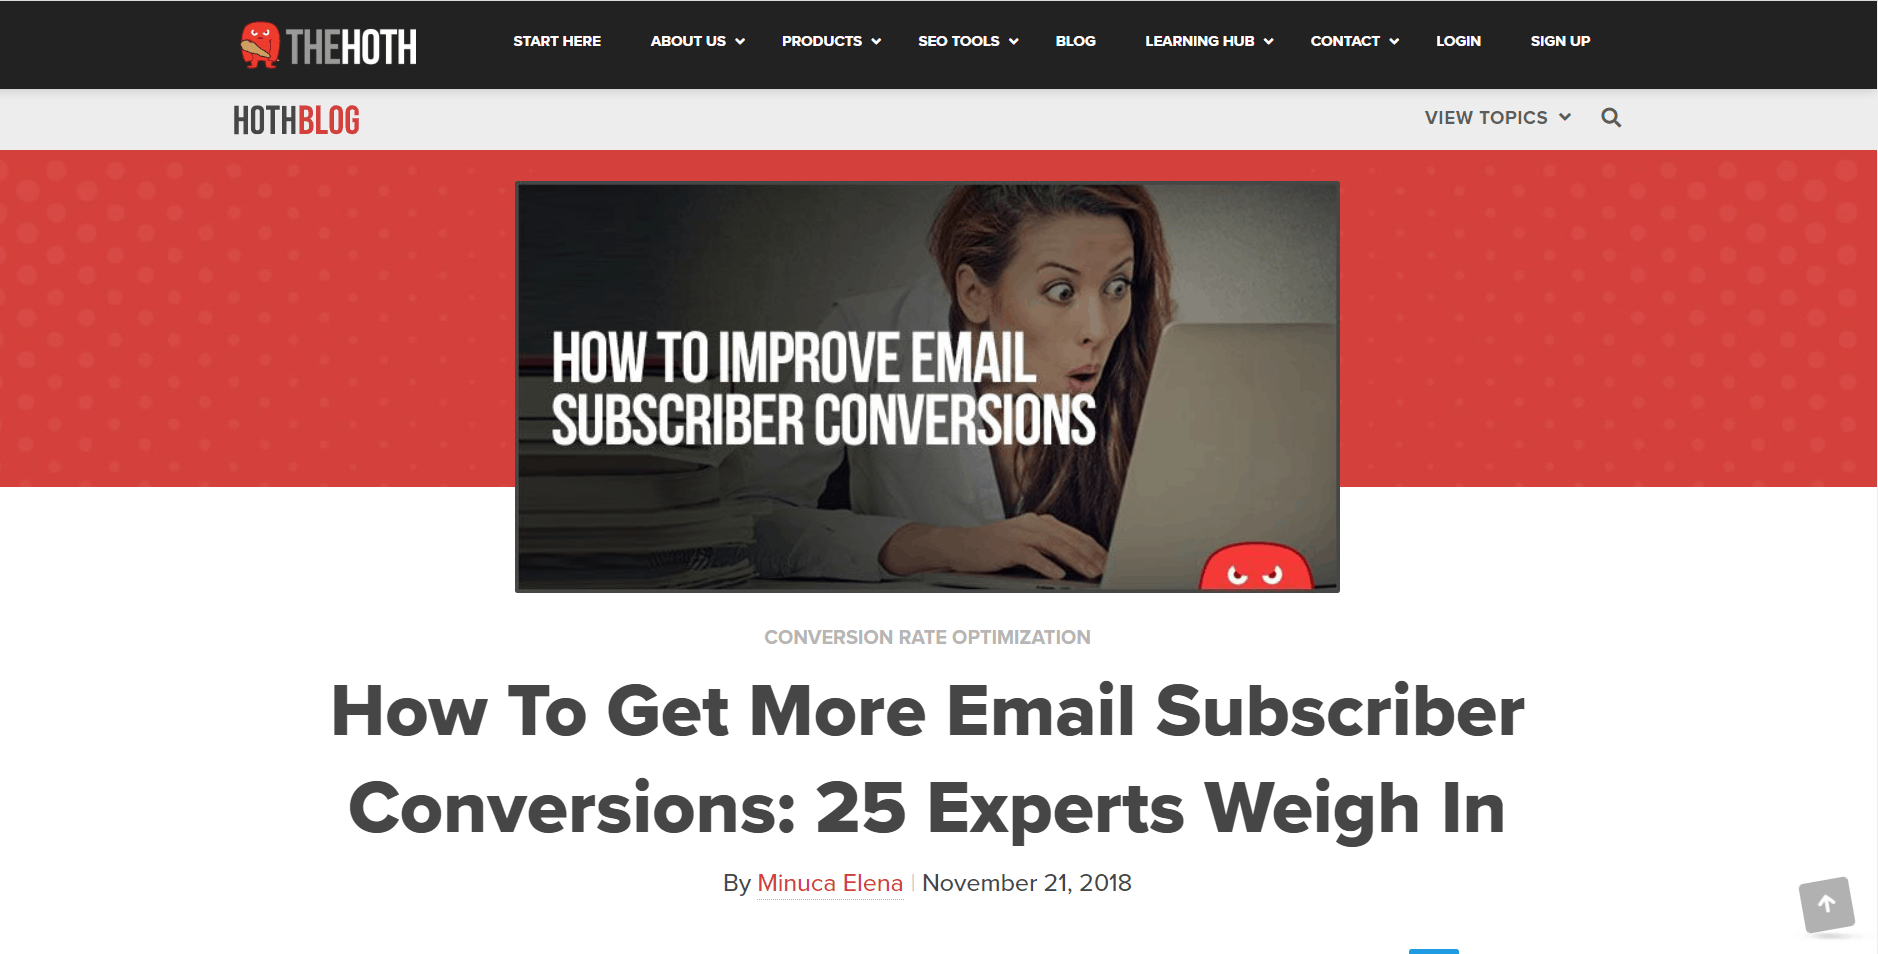 Email marketing expert roundup by Minuca Elena